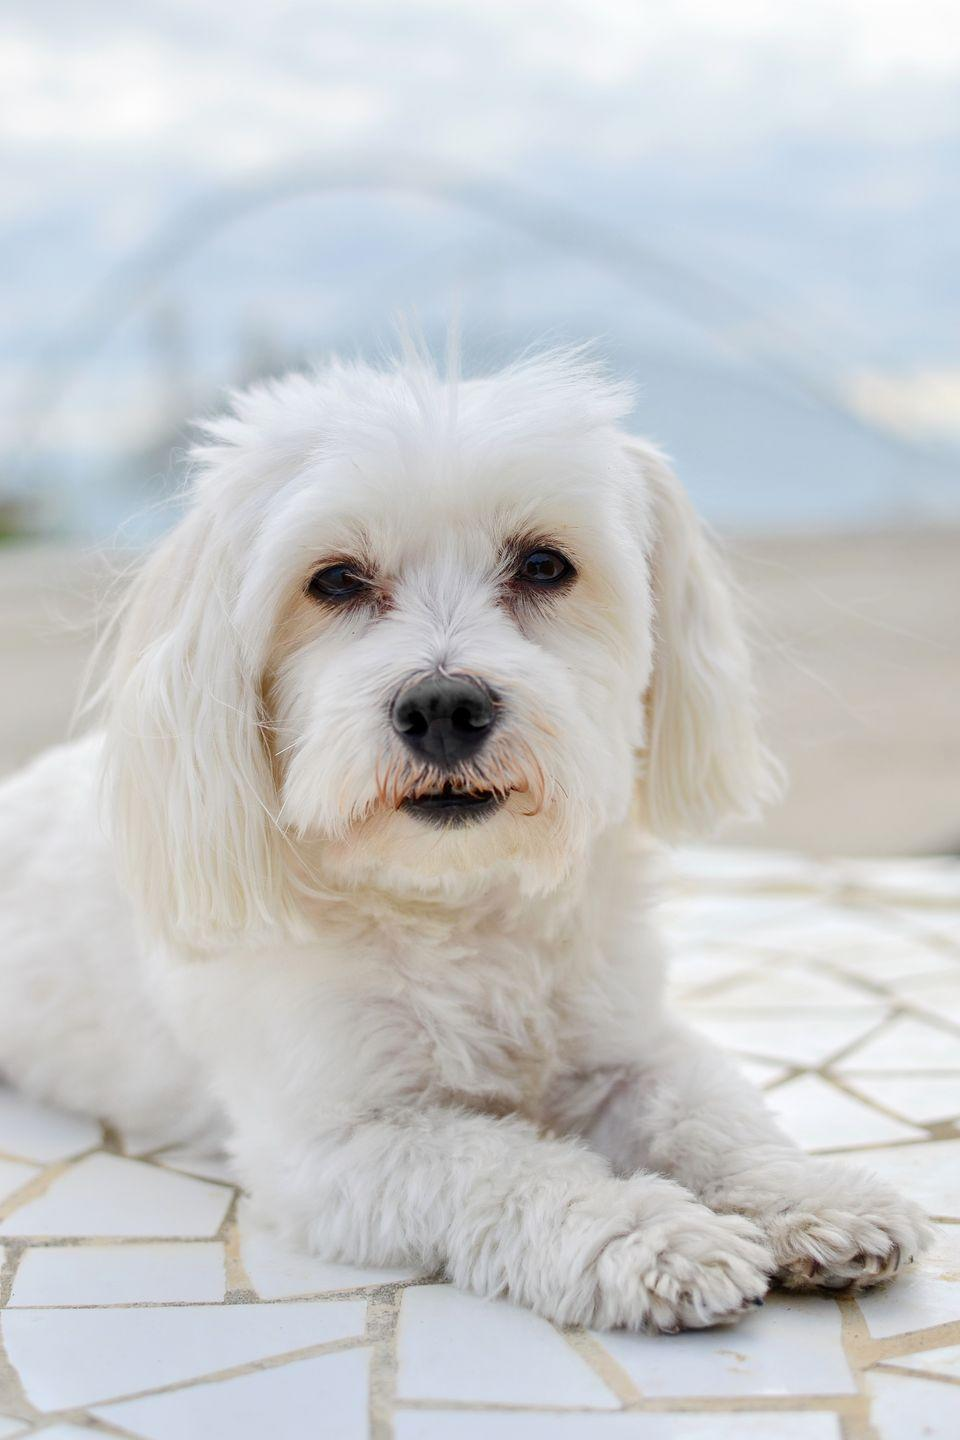 """<p>Averaging a teeny-tiny seven pounds, the ancient Greek breed basically defines the concept of """"lap dog."""" Even marathon cuddle sessions won't leave you sneezing, since their all-white coats are hypoallergenic. You can choose between cutting their soft fur into a sporty trim or letting it grow long, depending on <a href=""""https://www.goodhousekeeping.com/life/pets/g27018110/best-pet-hair-removers-amazon/"""" rel=""""nofollow noopener"""" target=""""_blank"""" data-ylk=""""slk:how much maintenance"""" class=""""link rapid-noclick-resp"""">how much maintenance</a> you prefer. </p>"""